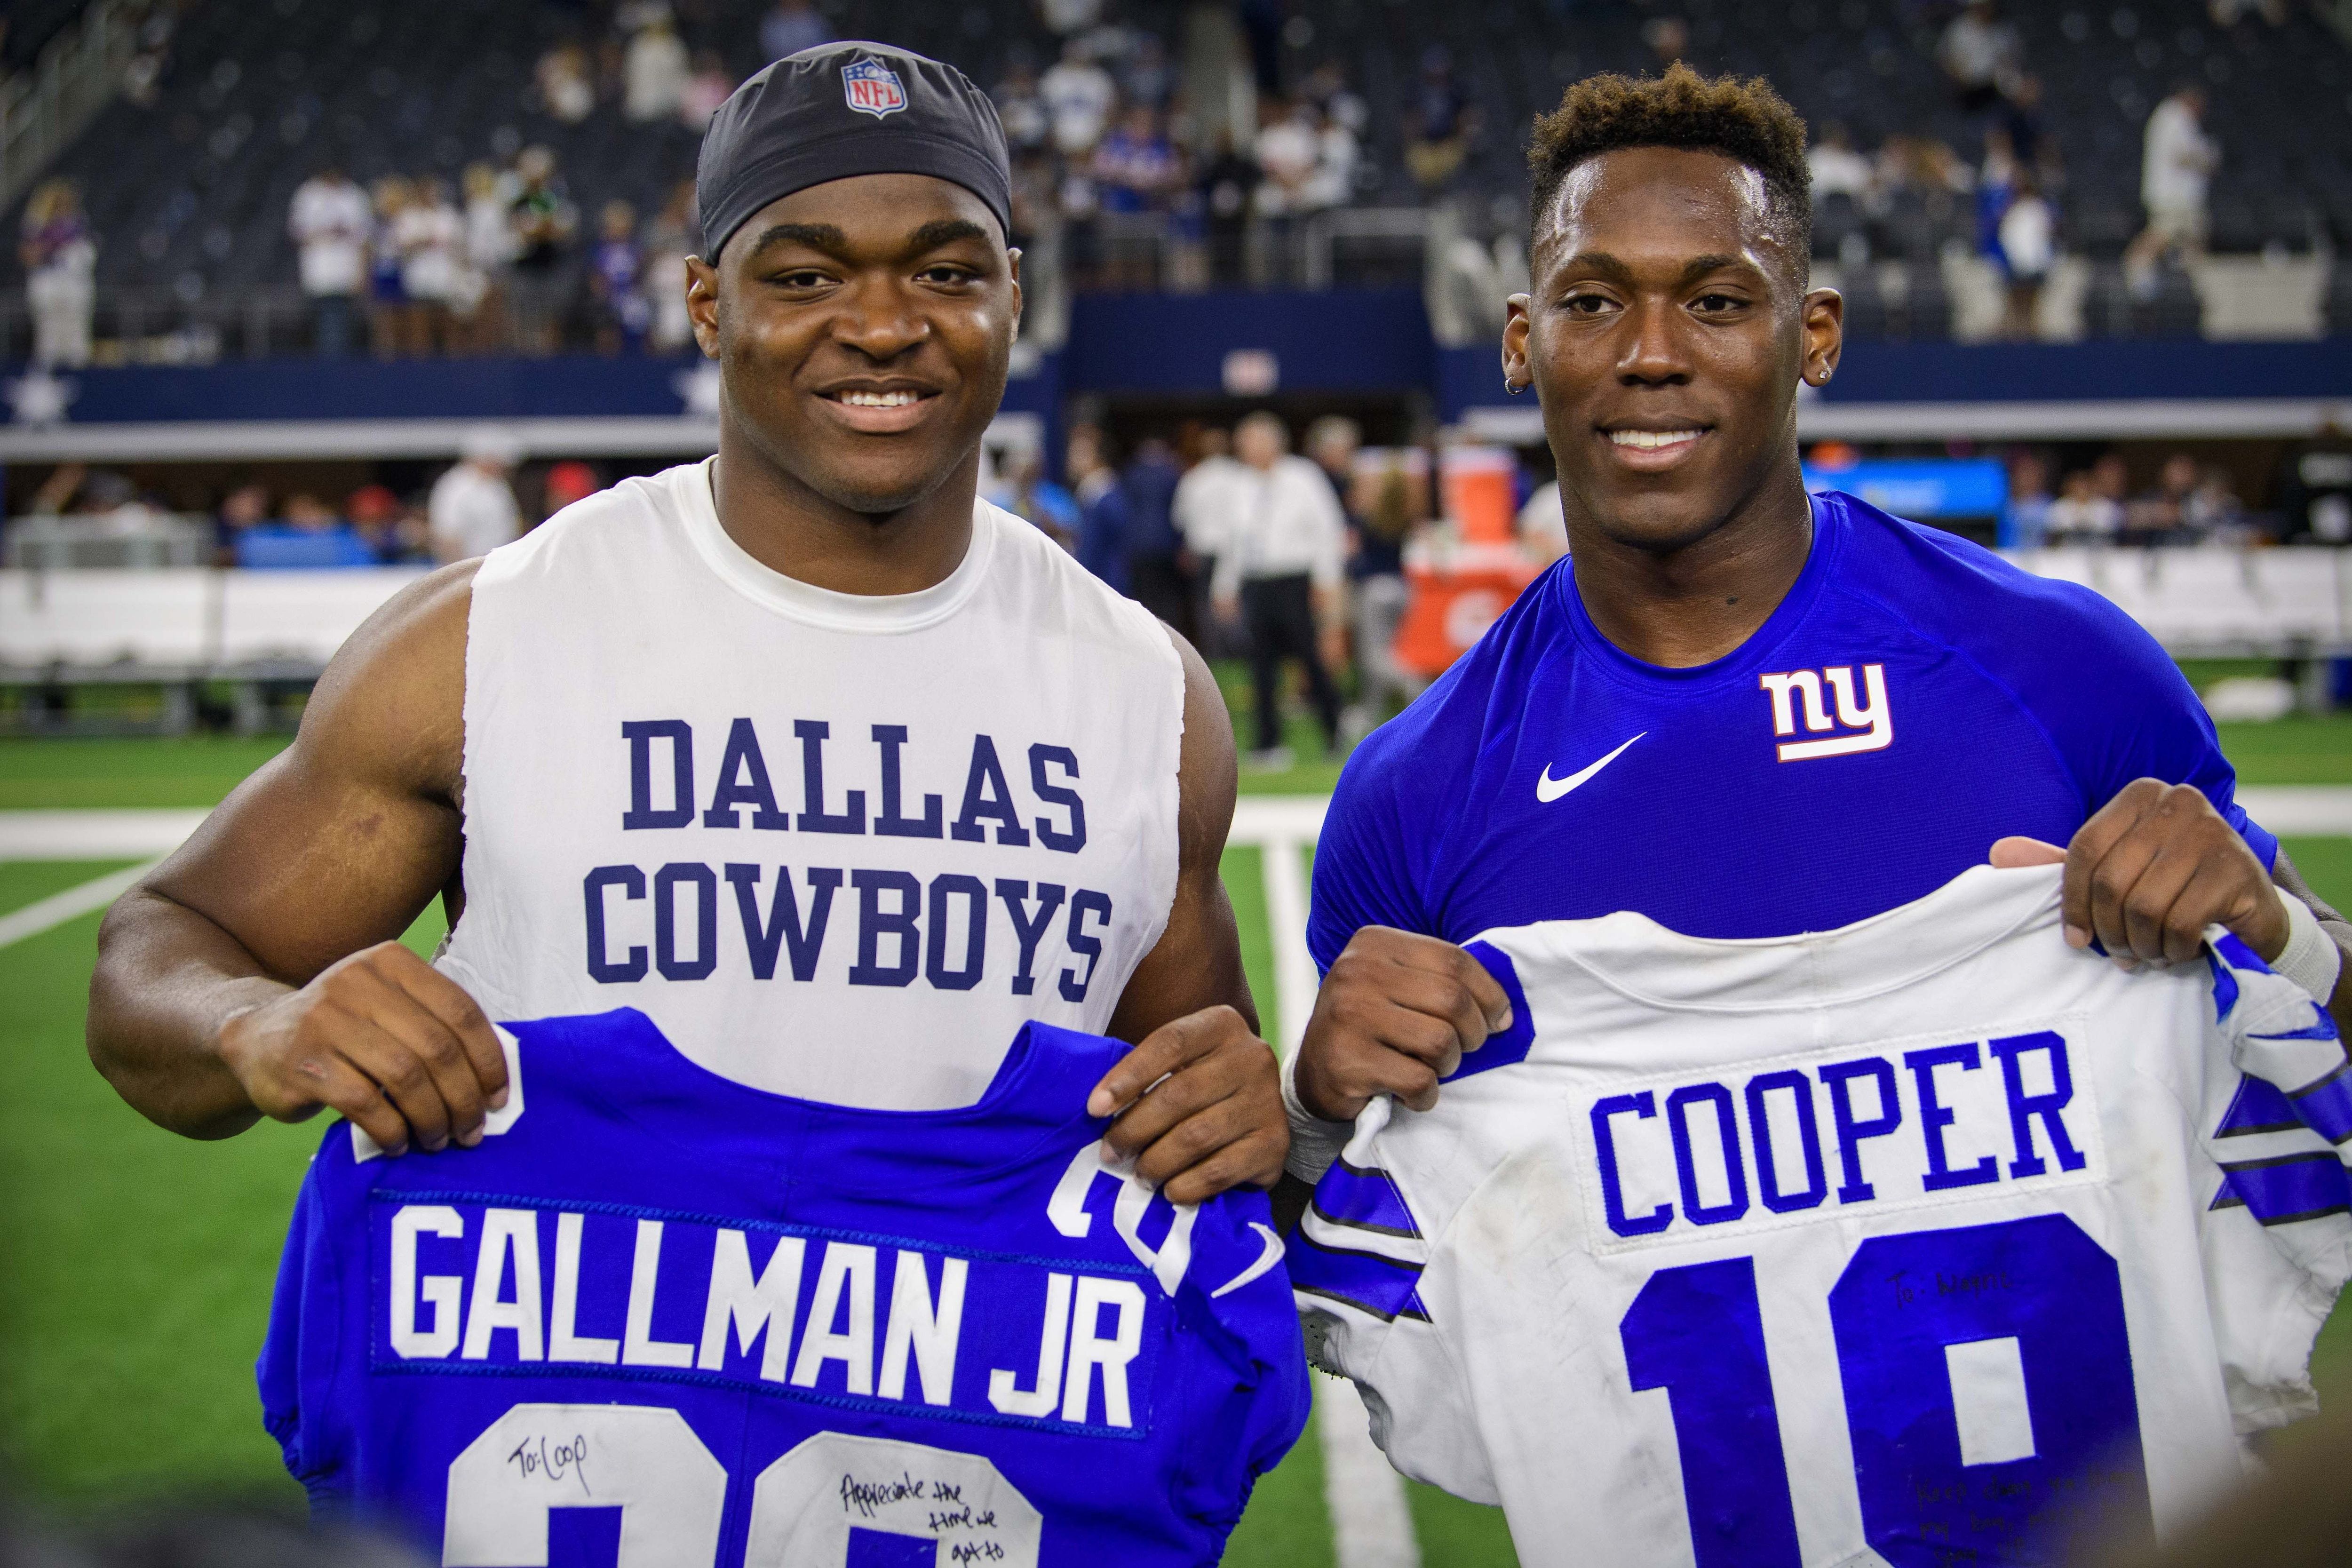 New York Giants, Dallas Cowboys, Amari Cooper, Wayne Gallman